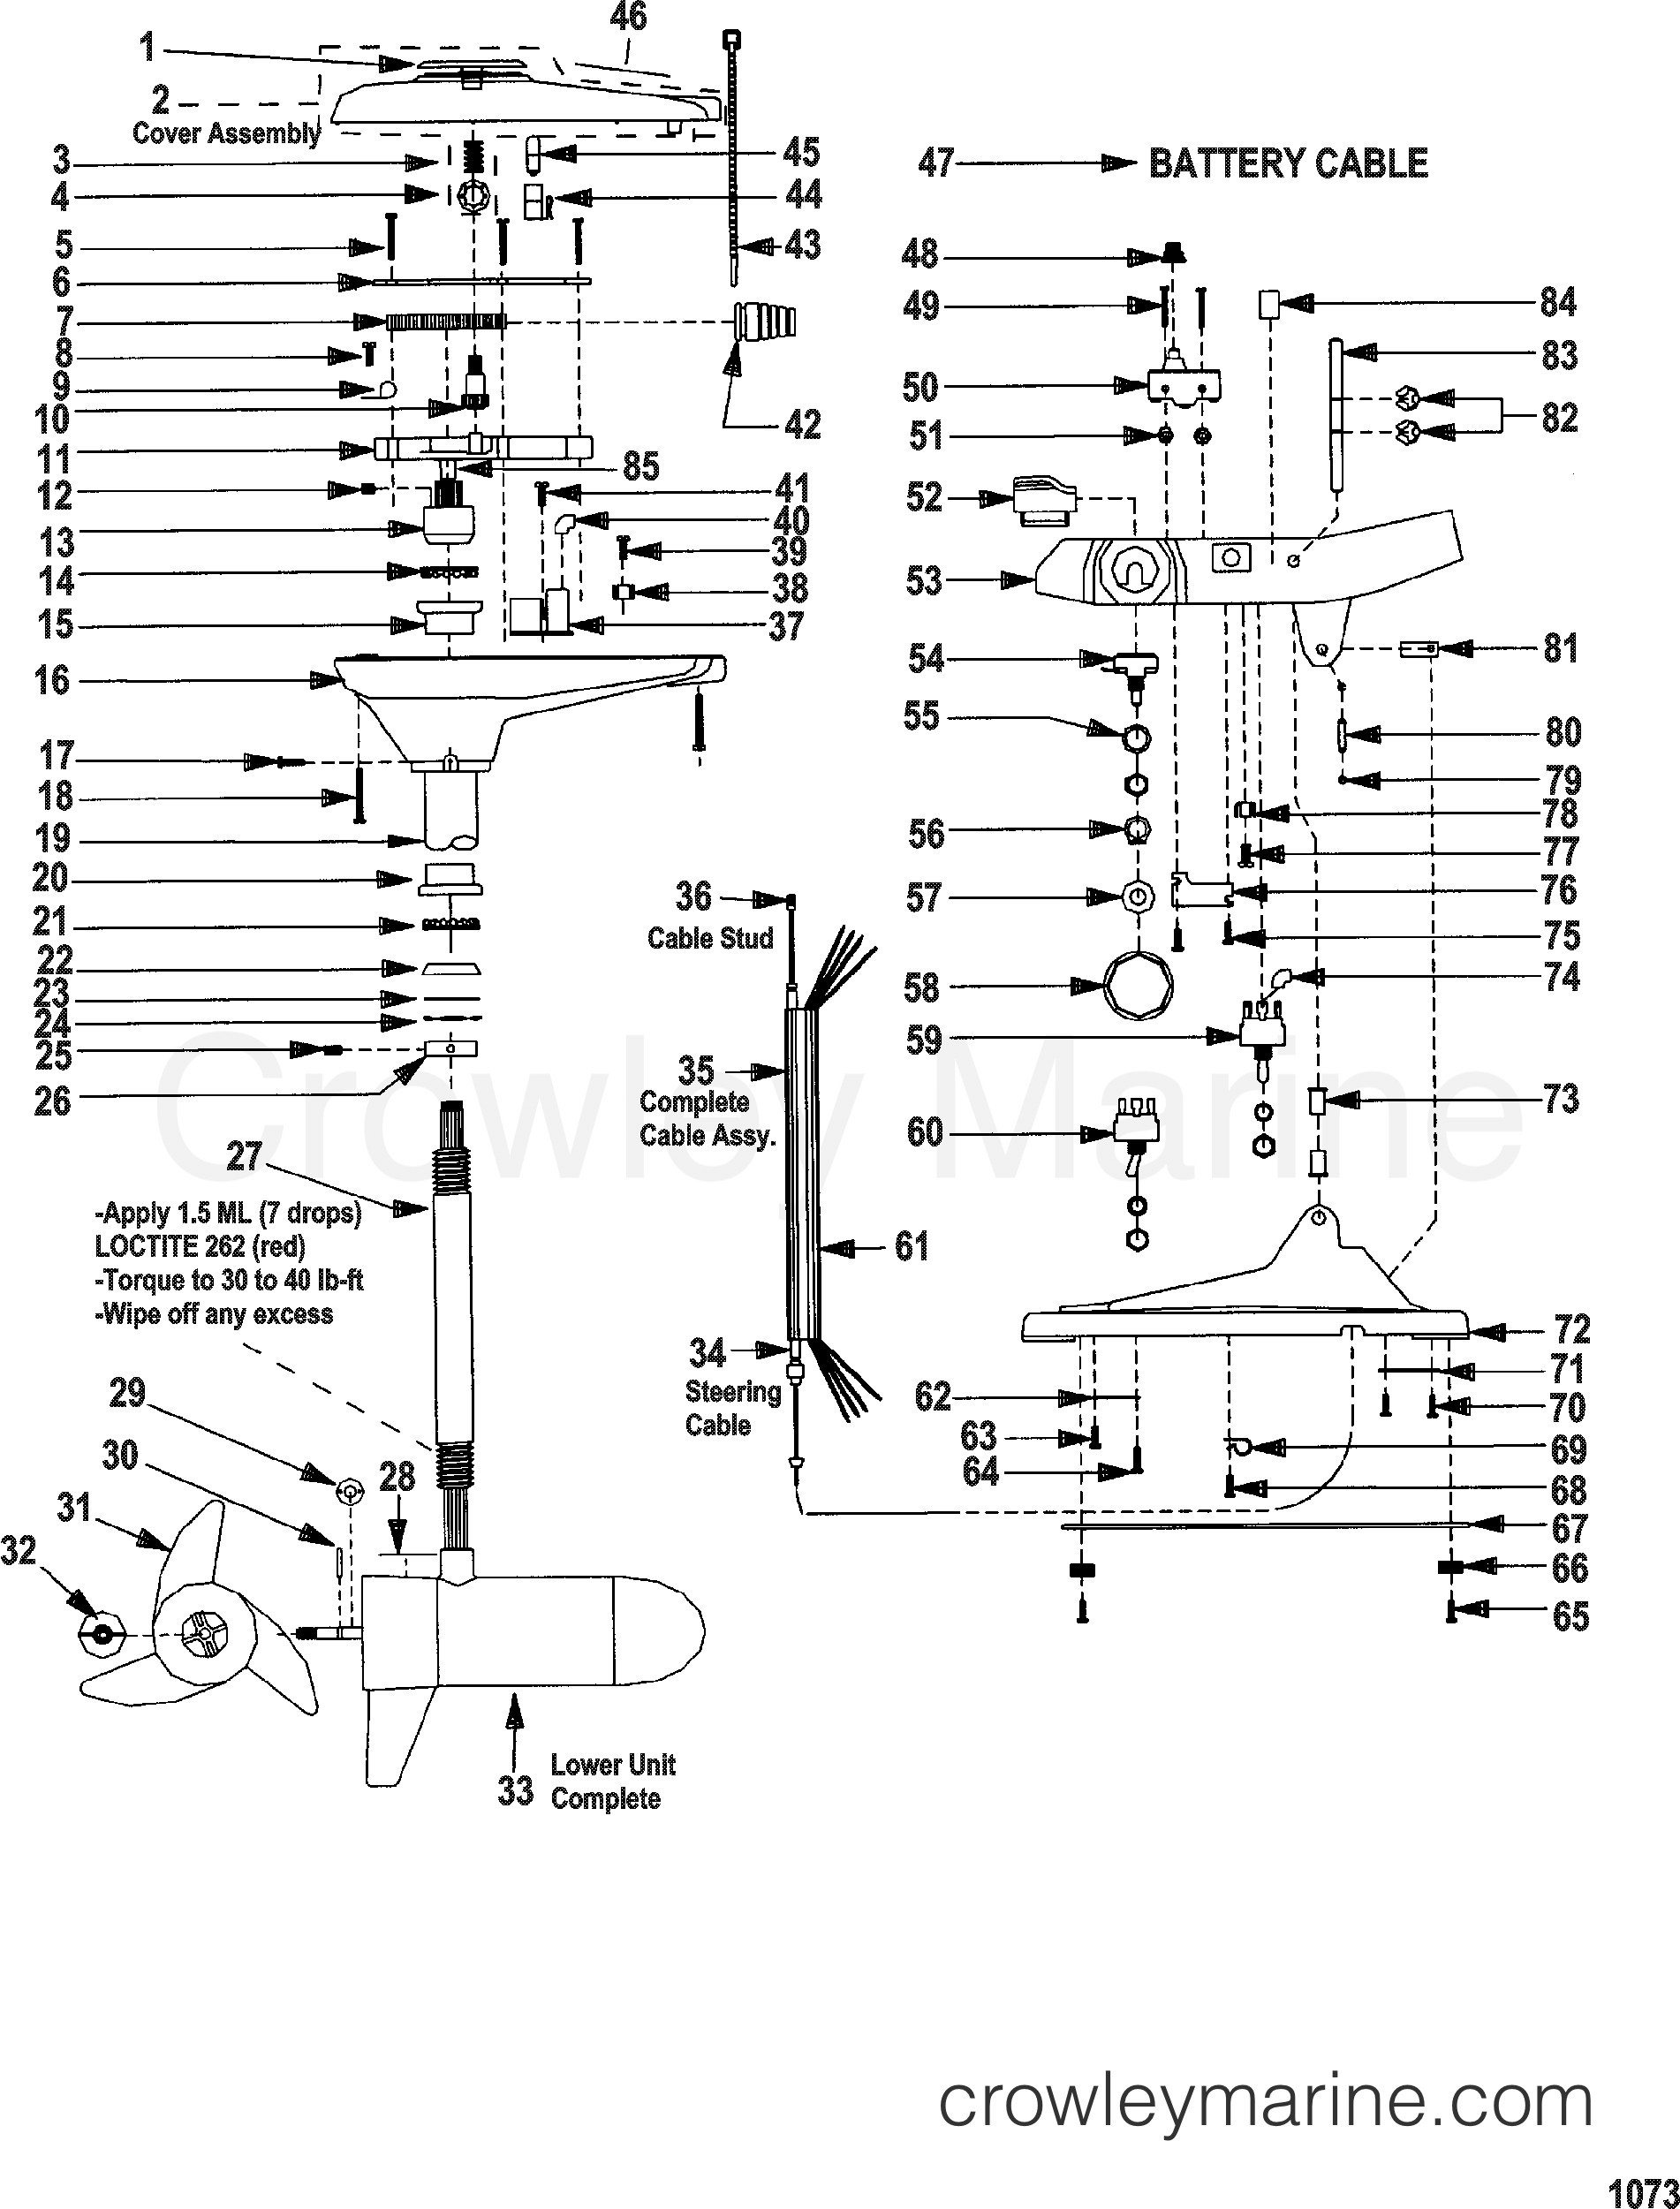 49cc Pocket Bike Engine Diagram 49cc Pocket Bike Wiring Diagram as Well  Scooter Cdi Wiring Diagram